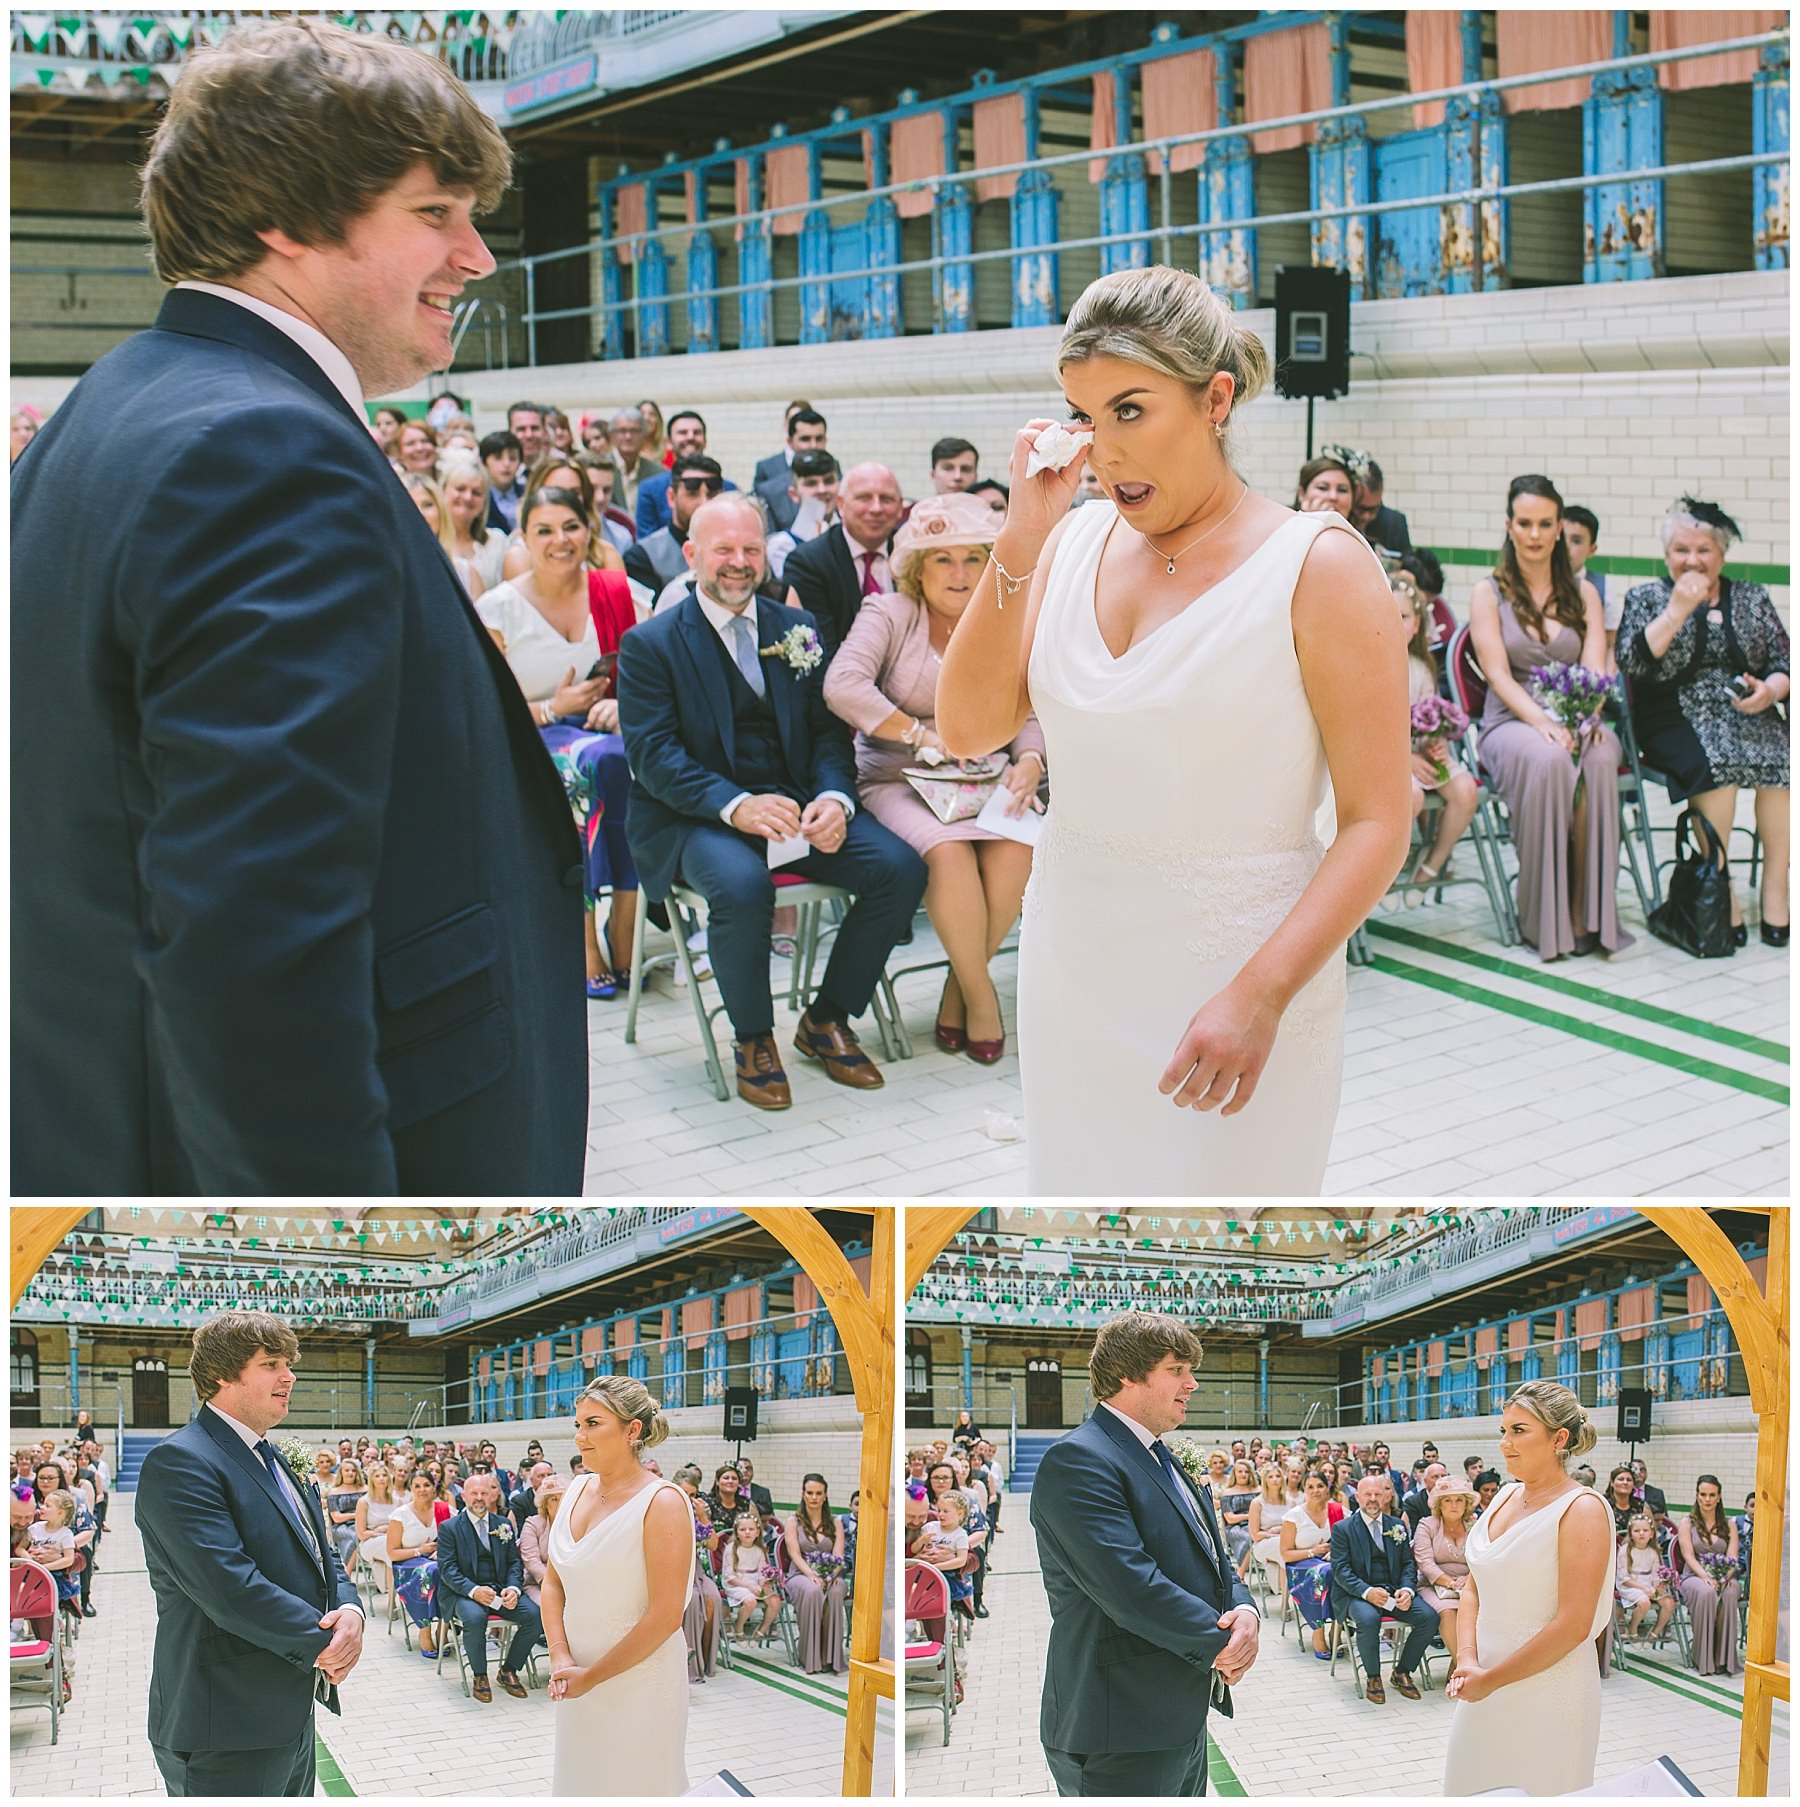 wedding ceremony in the pool at victoria baths